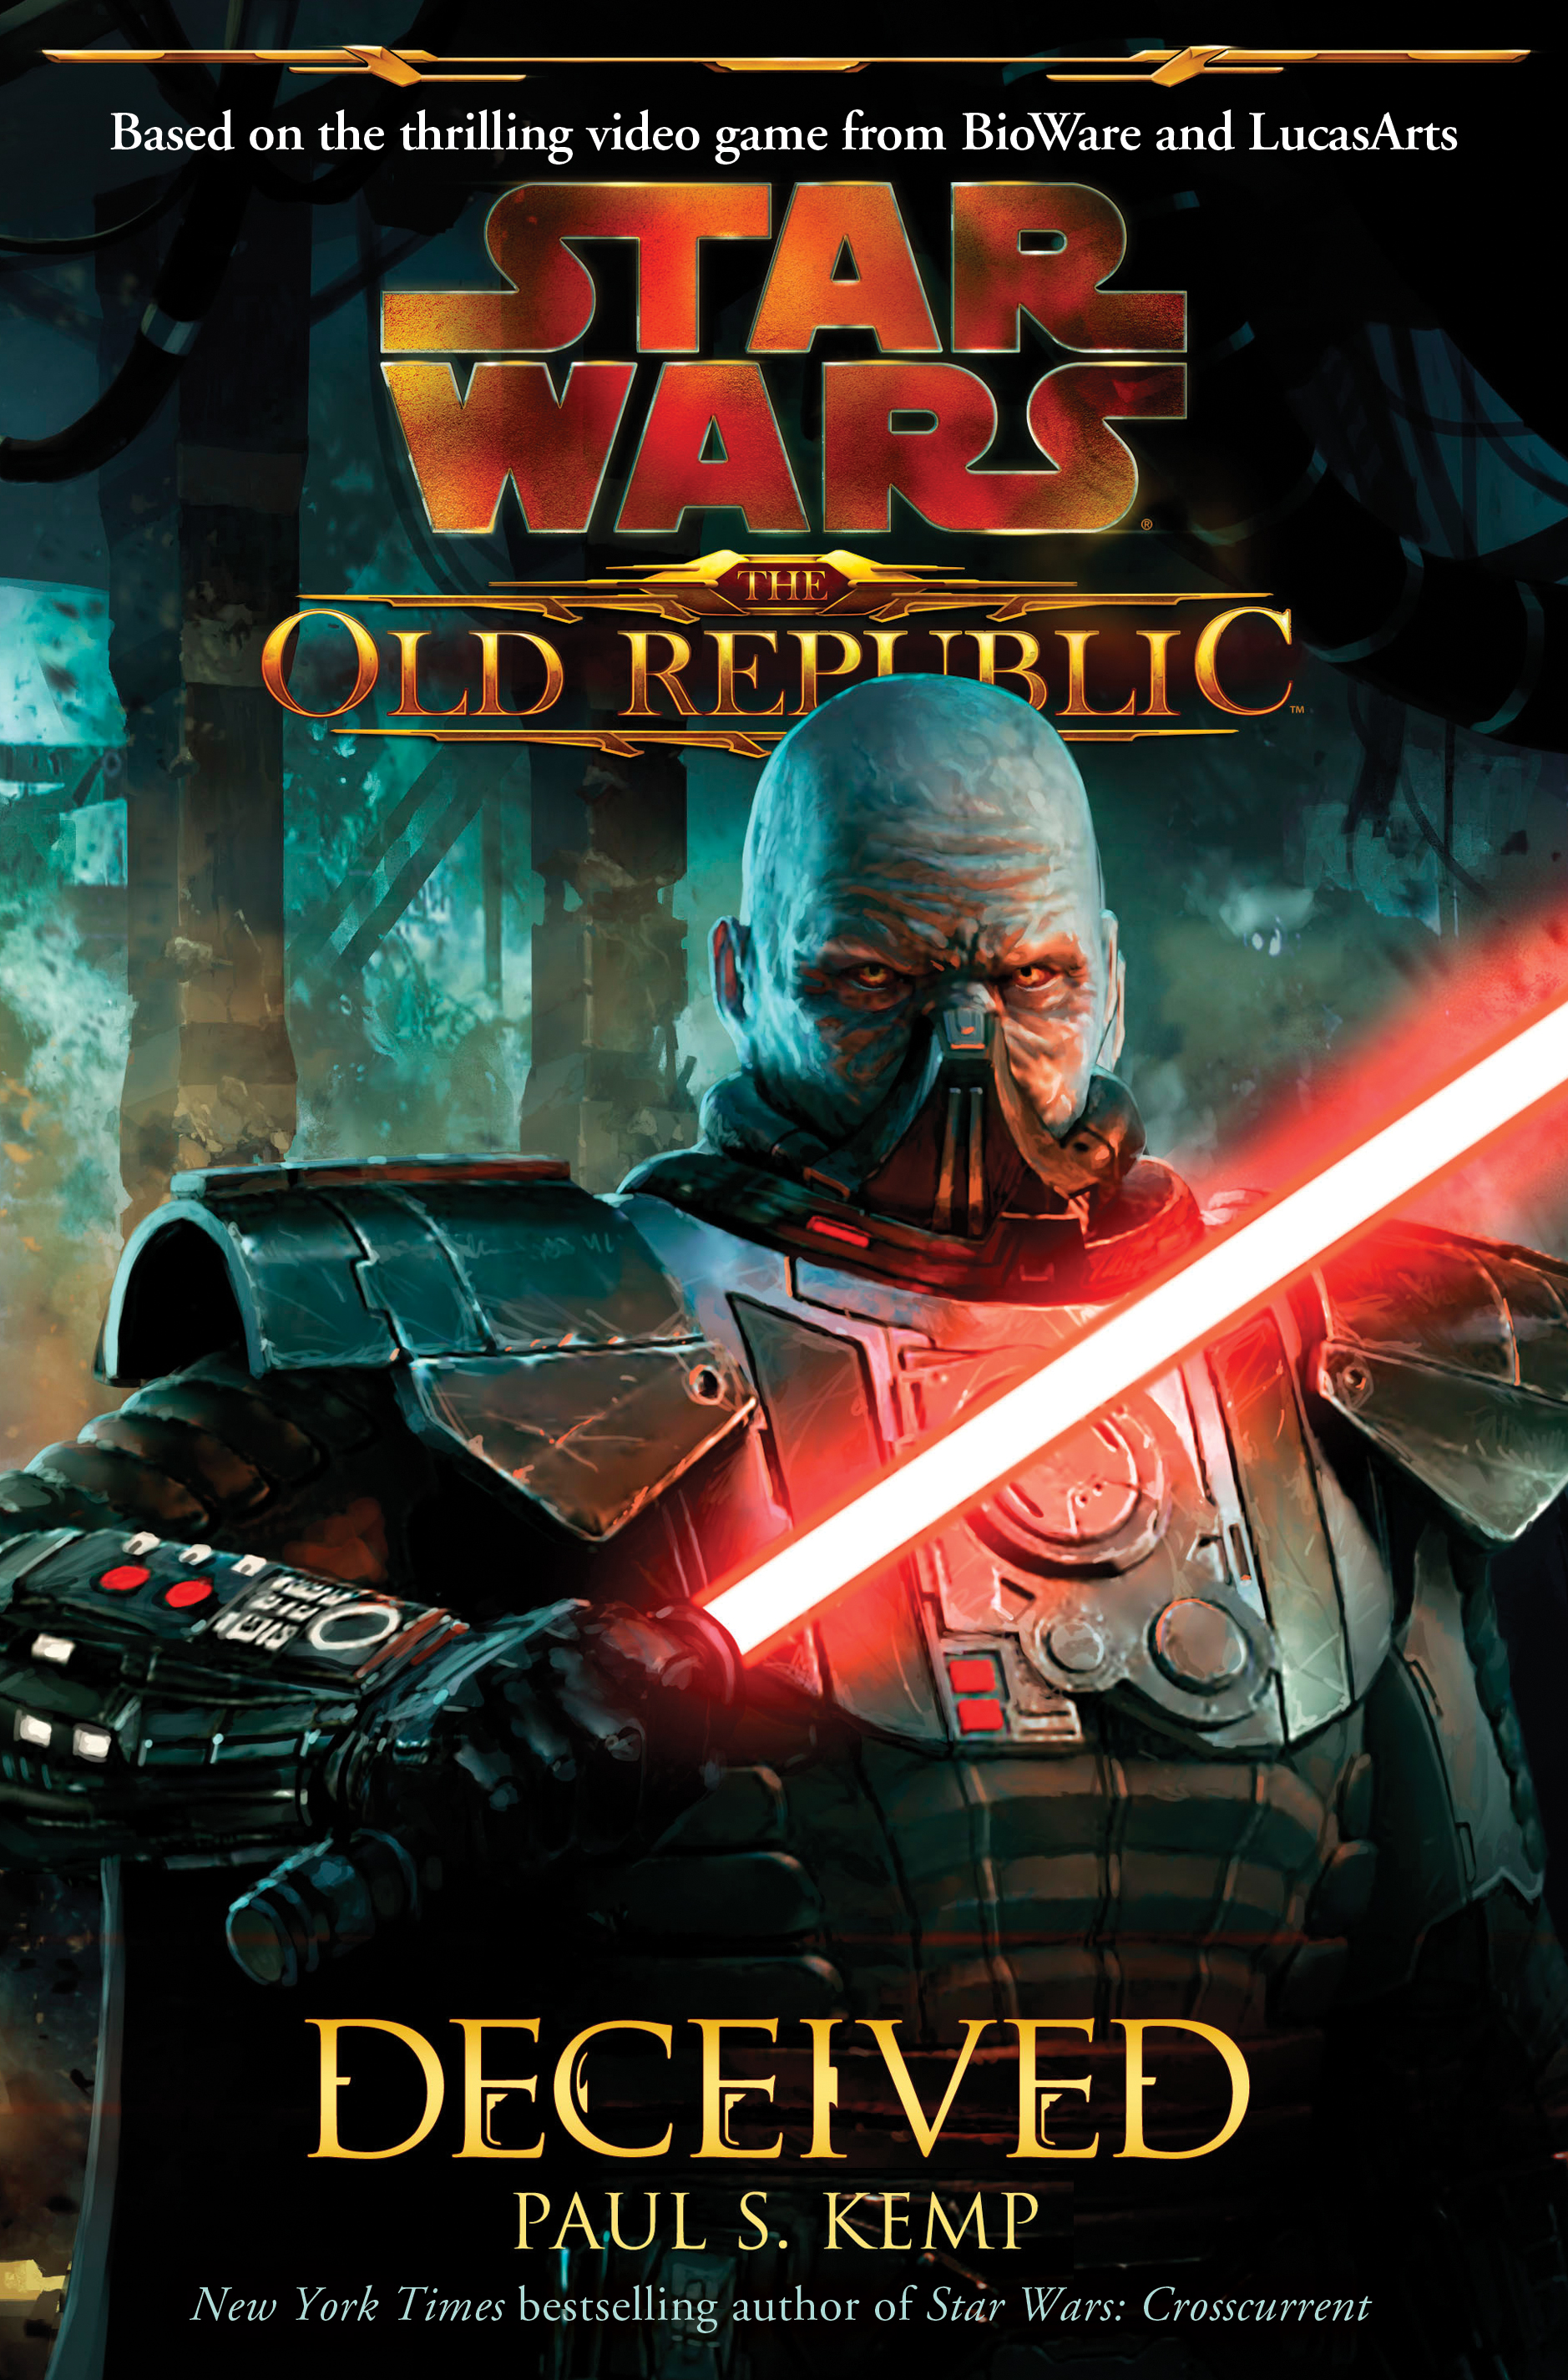 http://images.wikia.com/starwars/images/c/cd/Swtor_deceived_cover.jpg